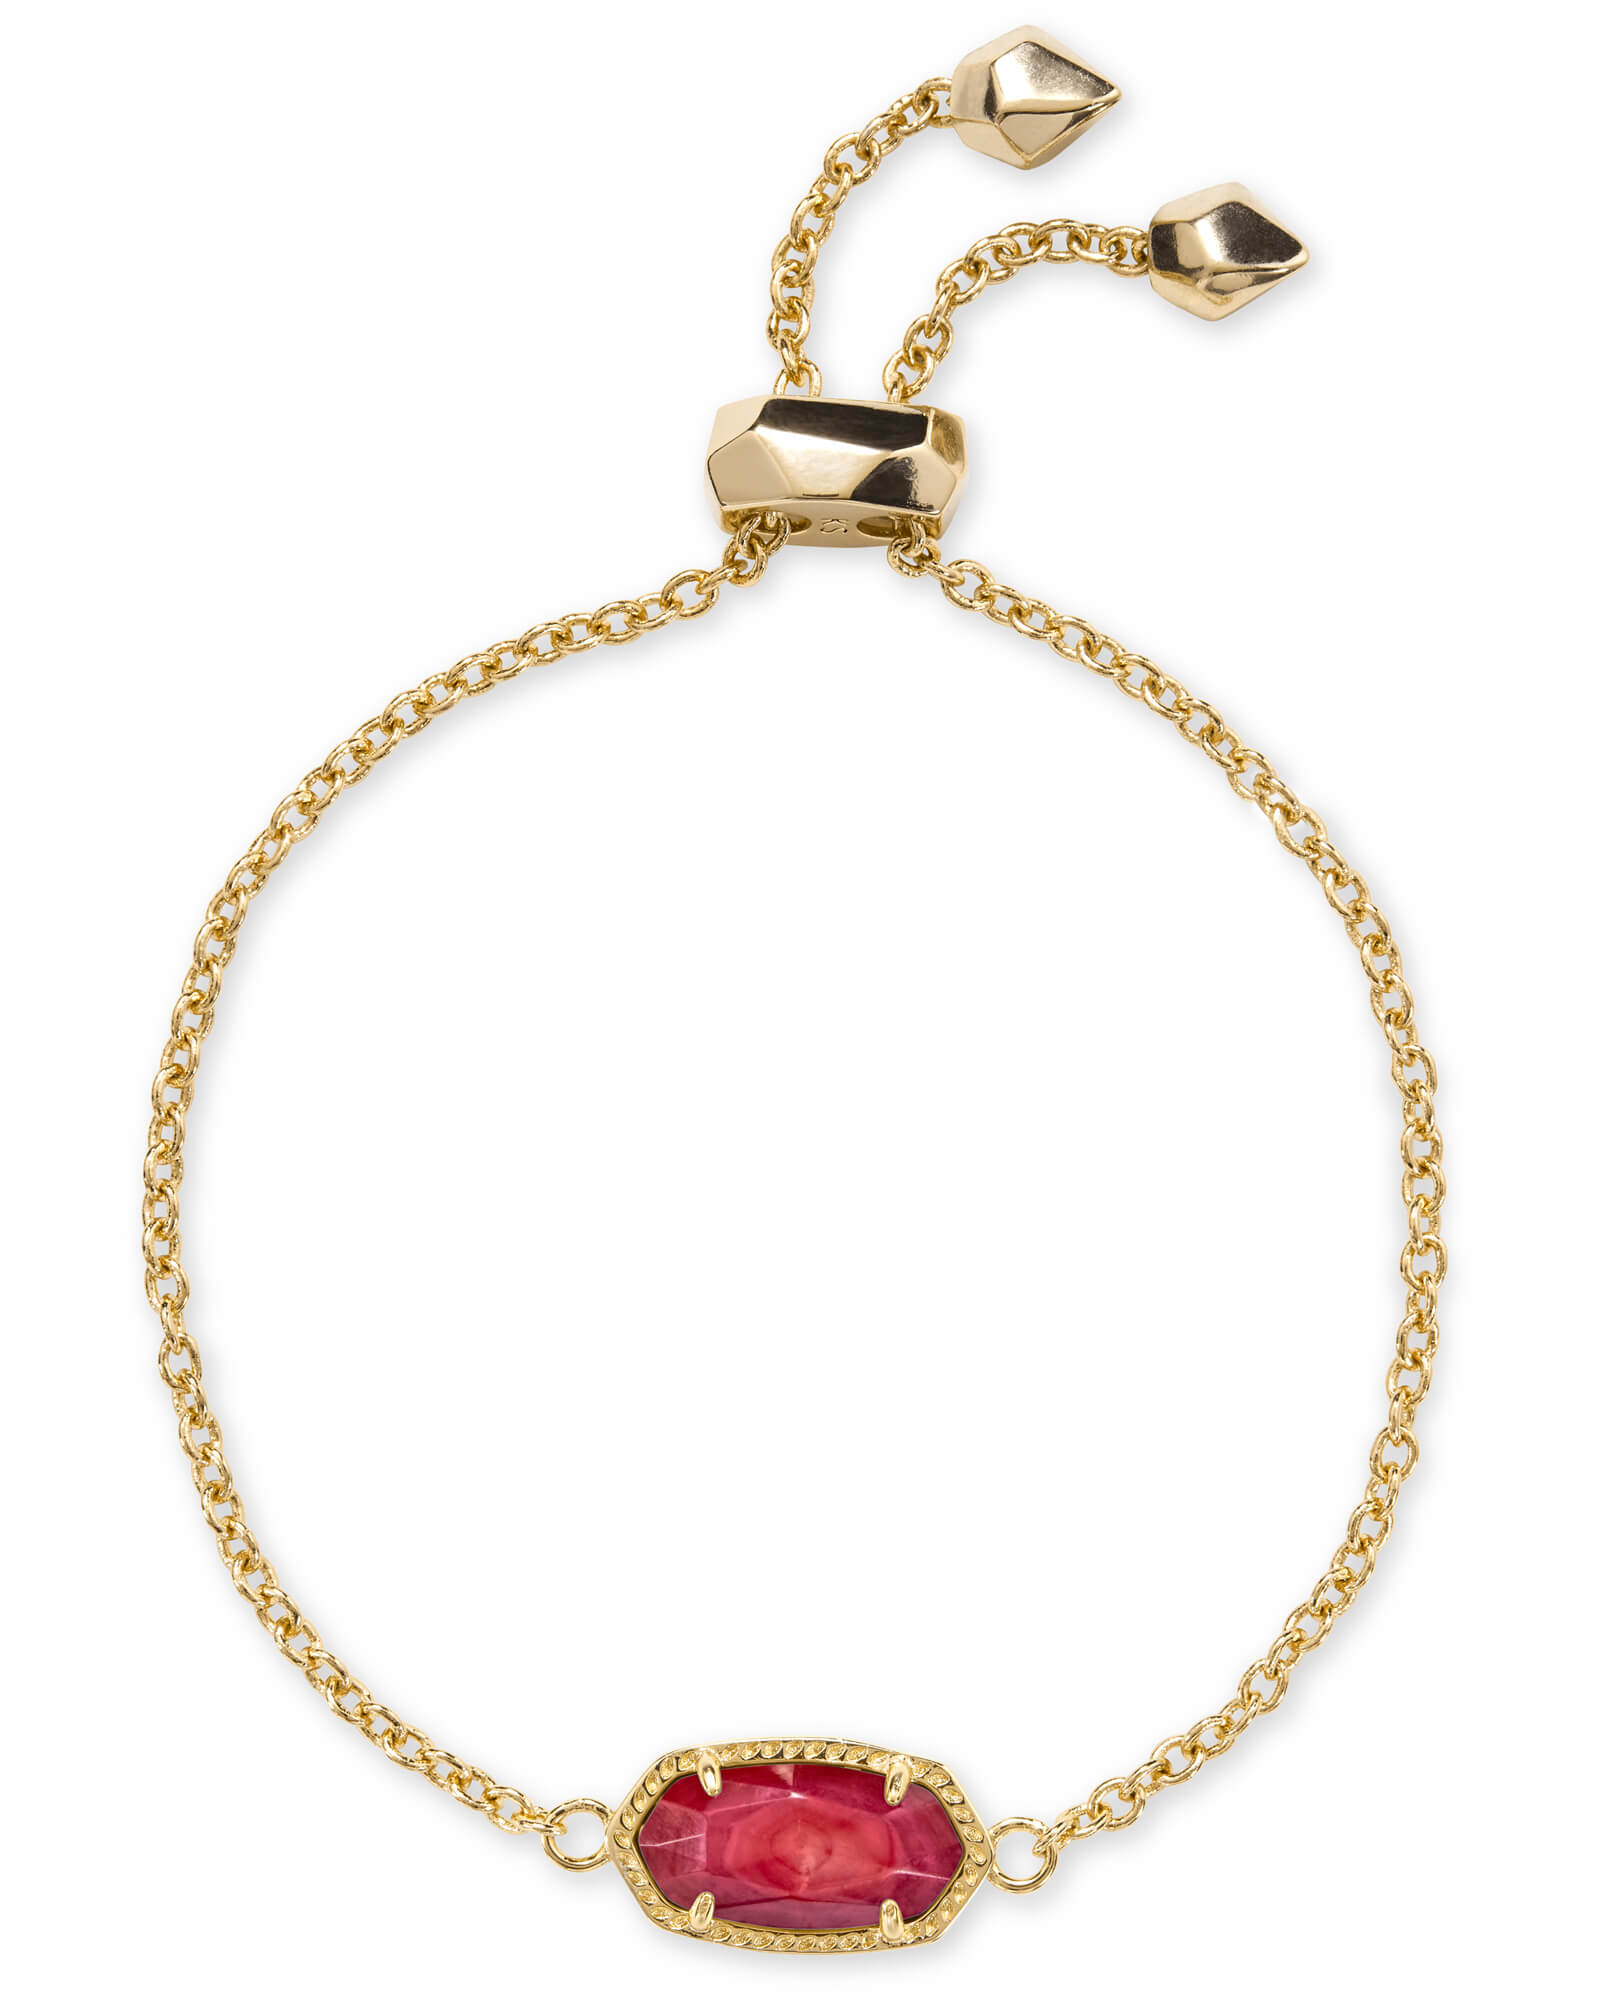 Elaina Gold Chain Bracelet in Red Mother-of-Pearl